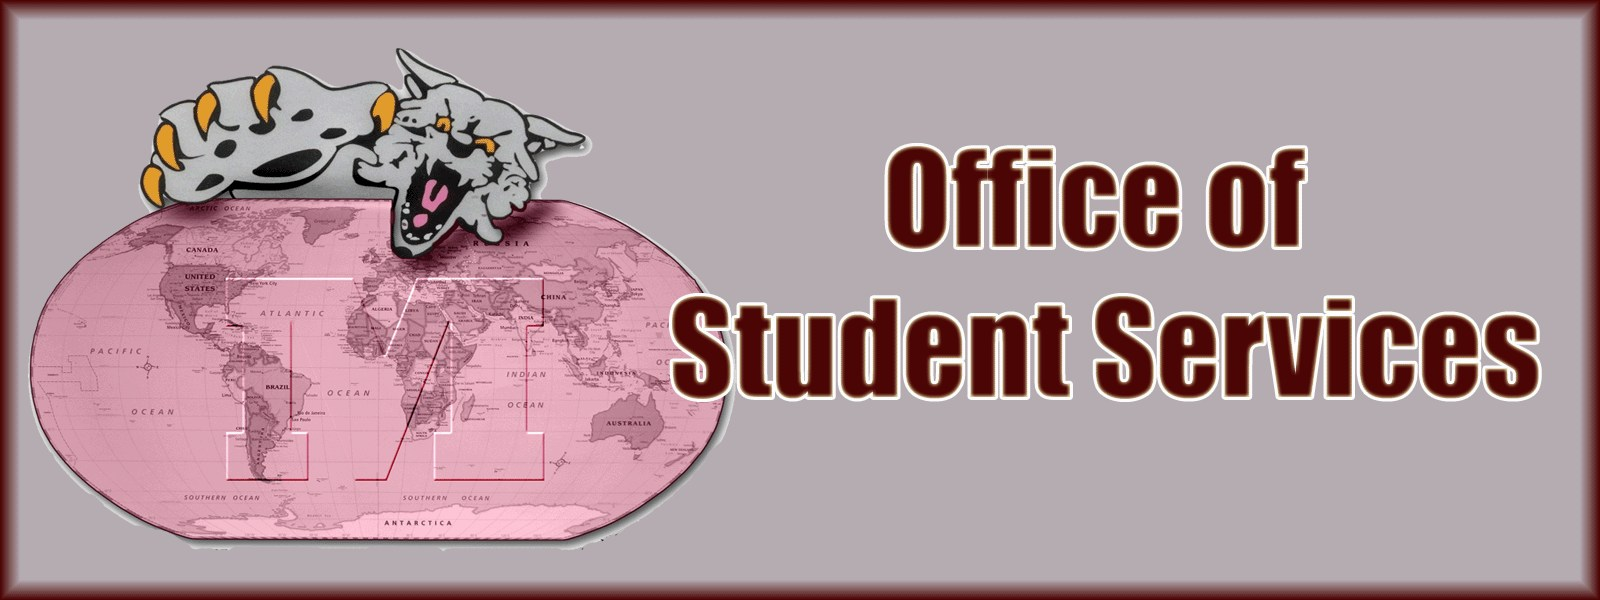 Office of Student Services logo